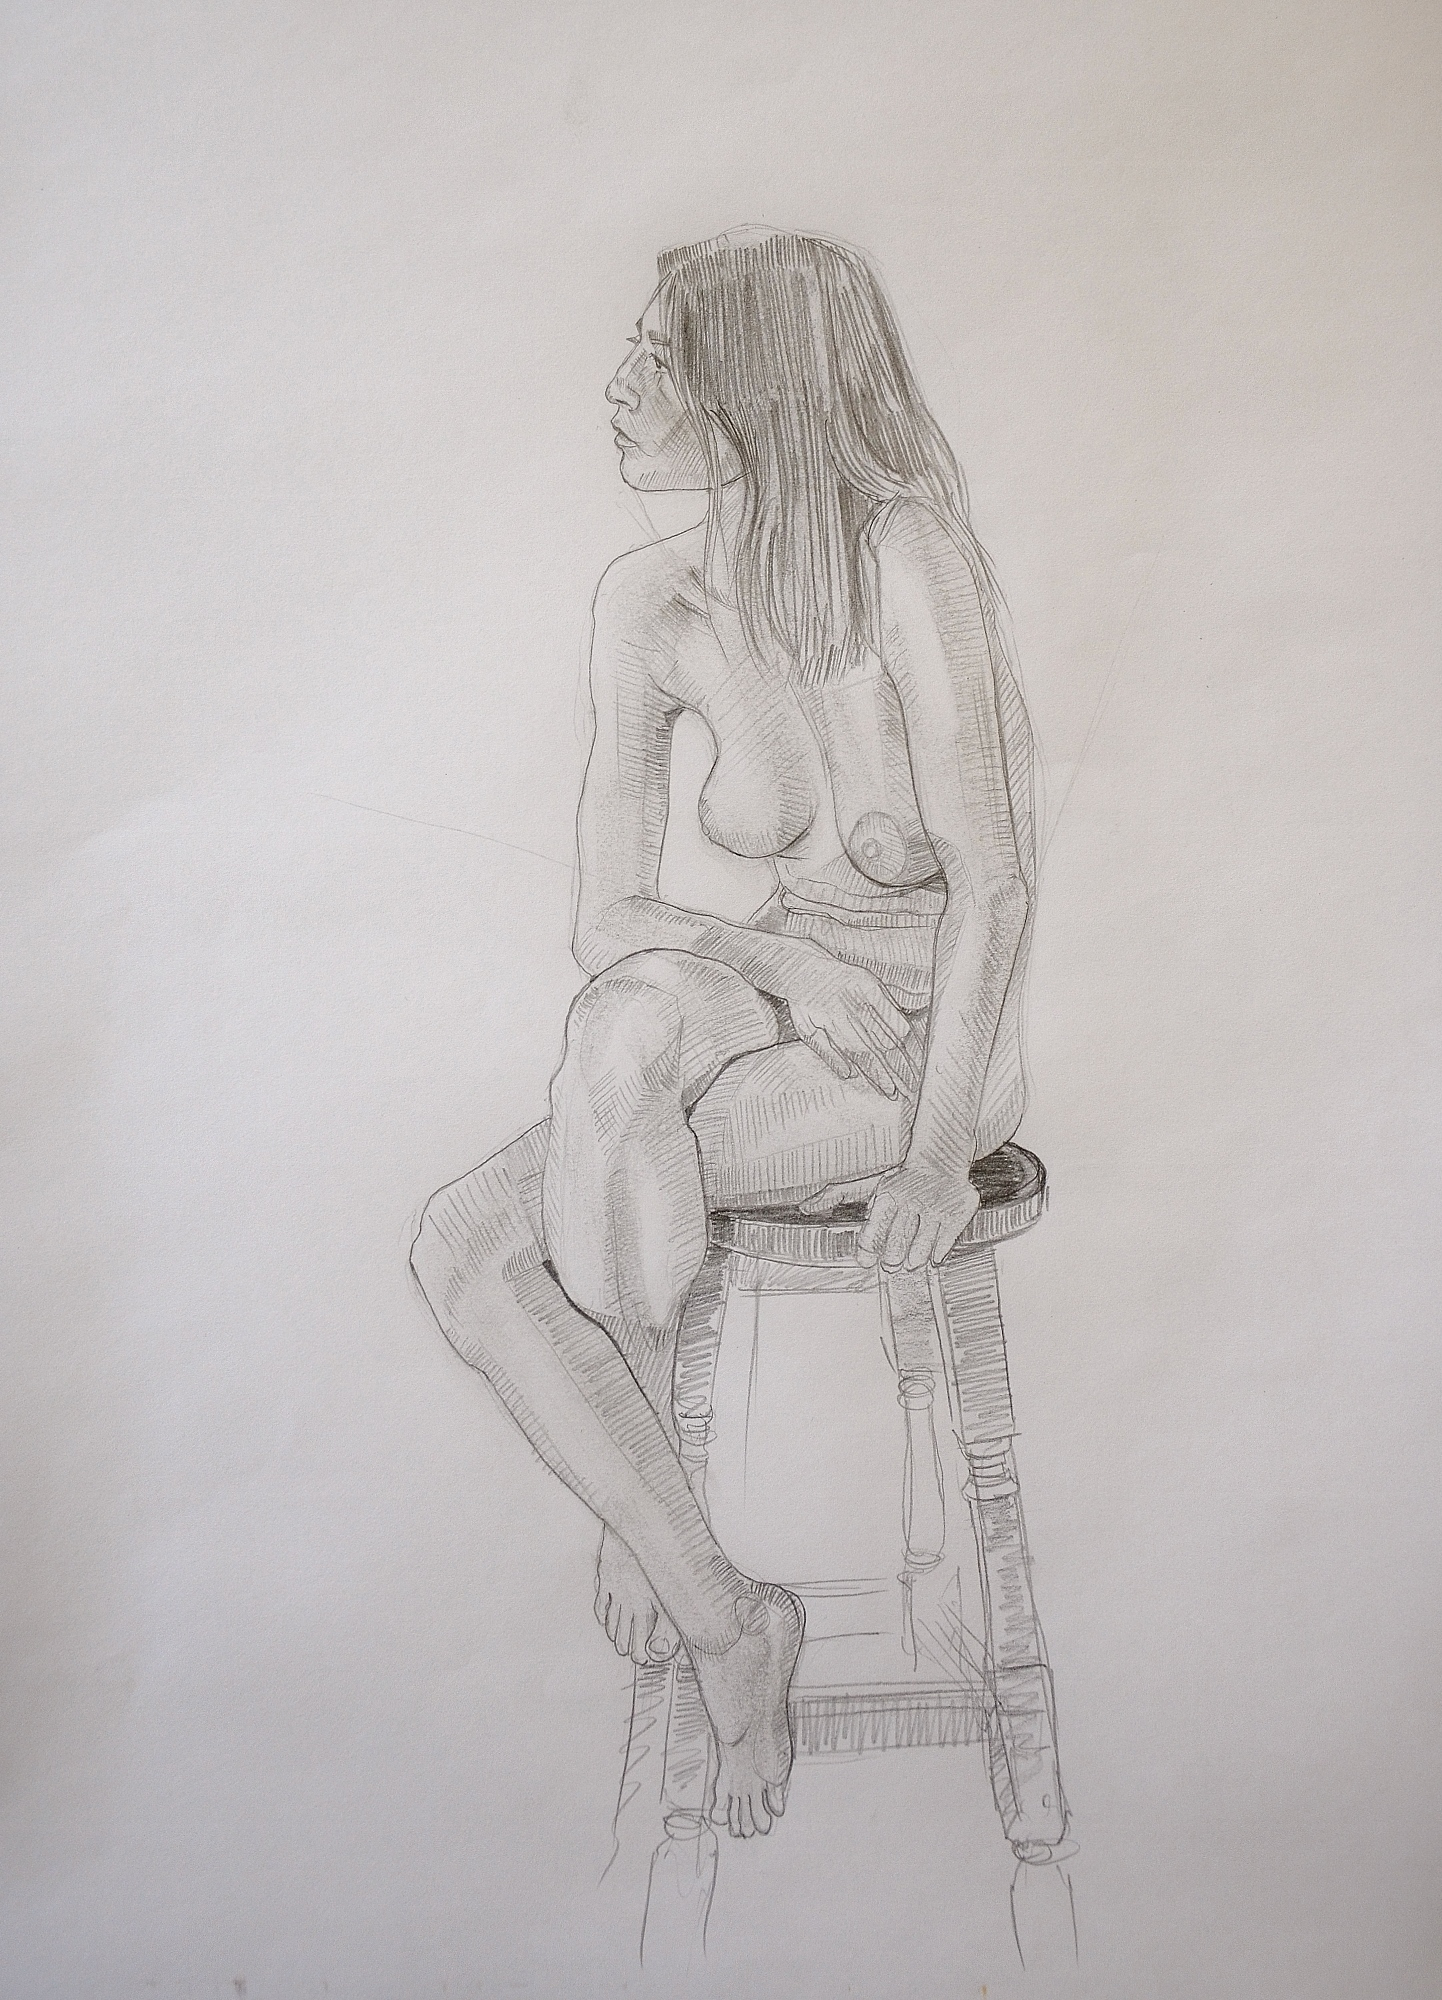 Teacher Makes Art Students Use Same Paper For Figure Drawing